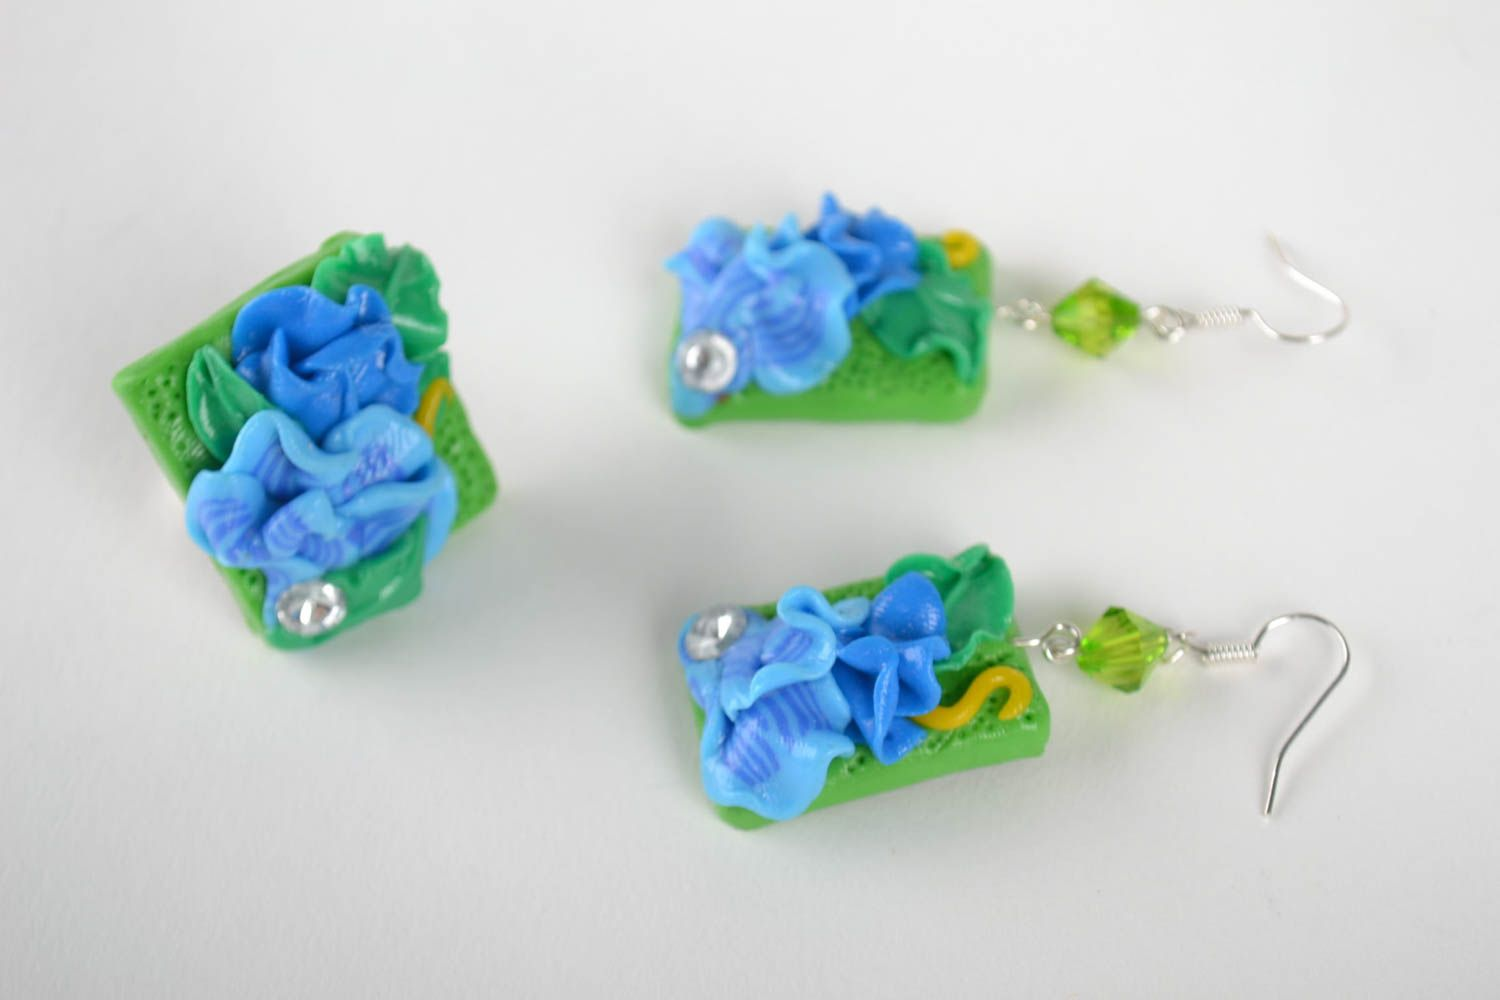 Handmade earrings unusual pendant clay jewelry designer accessories gift ideas photo 2